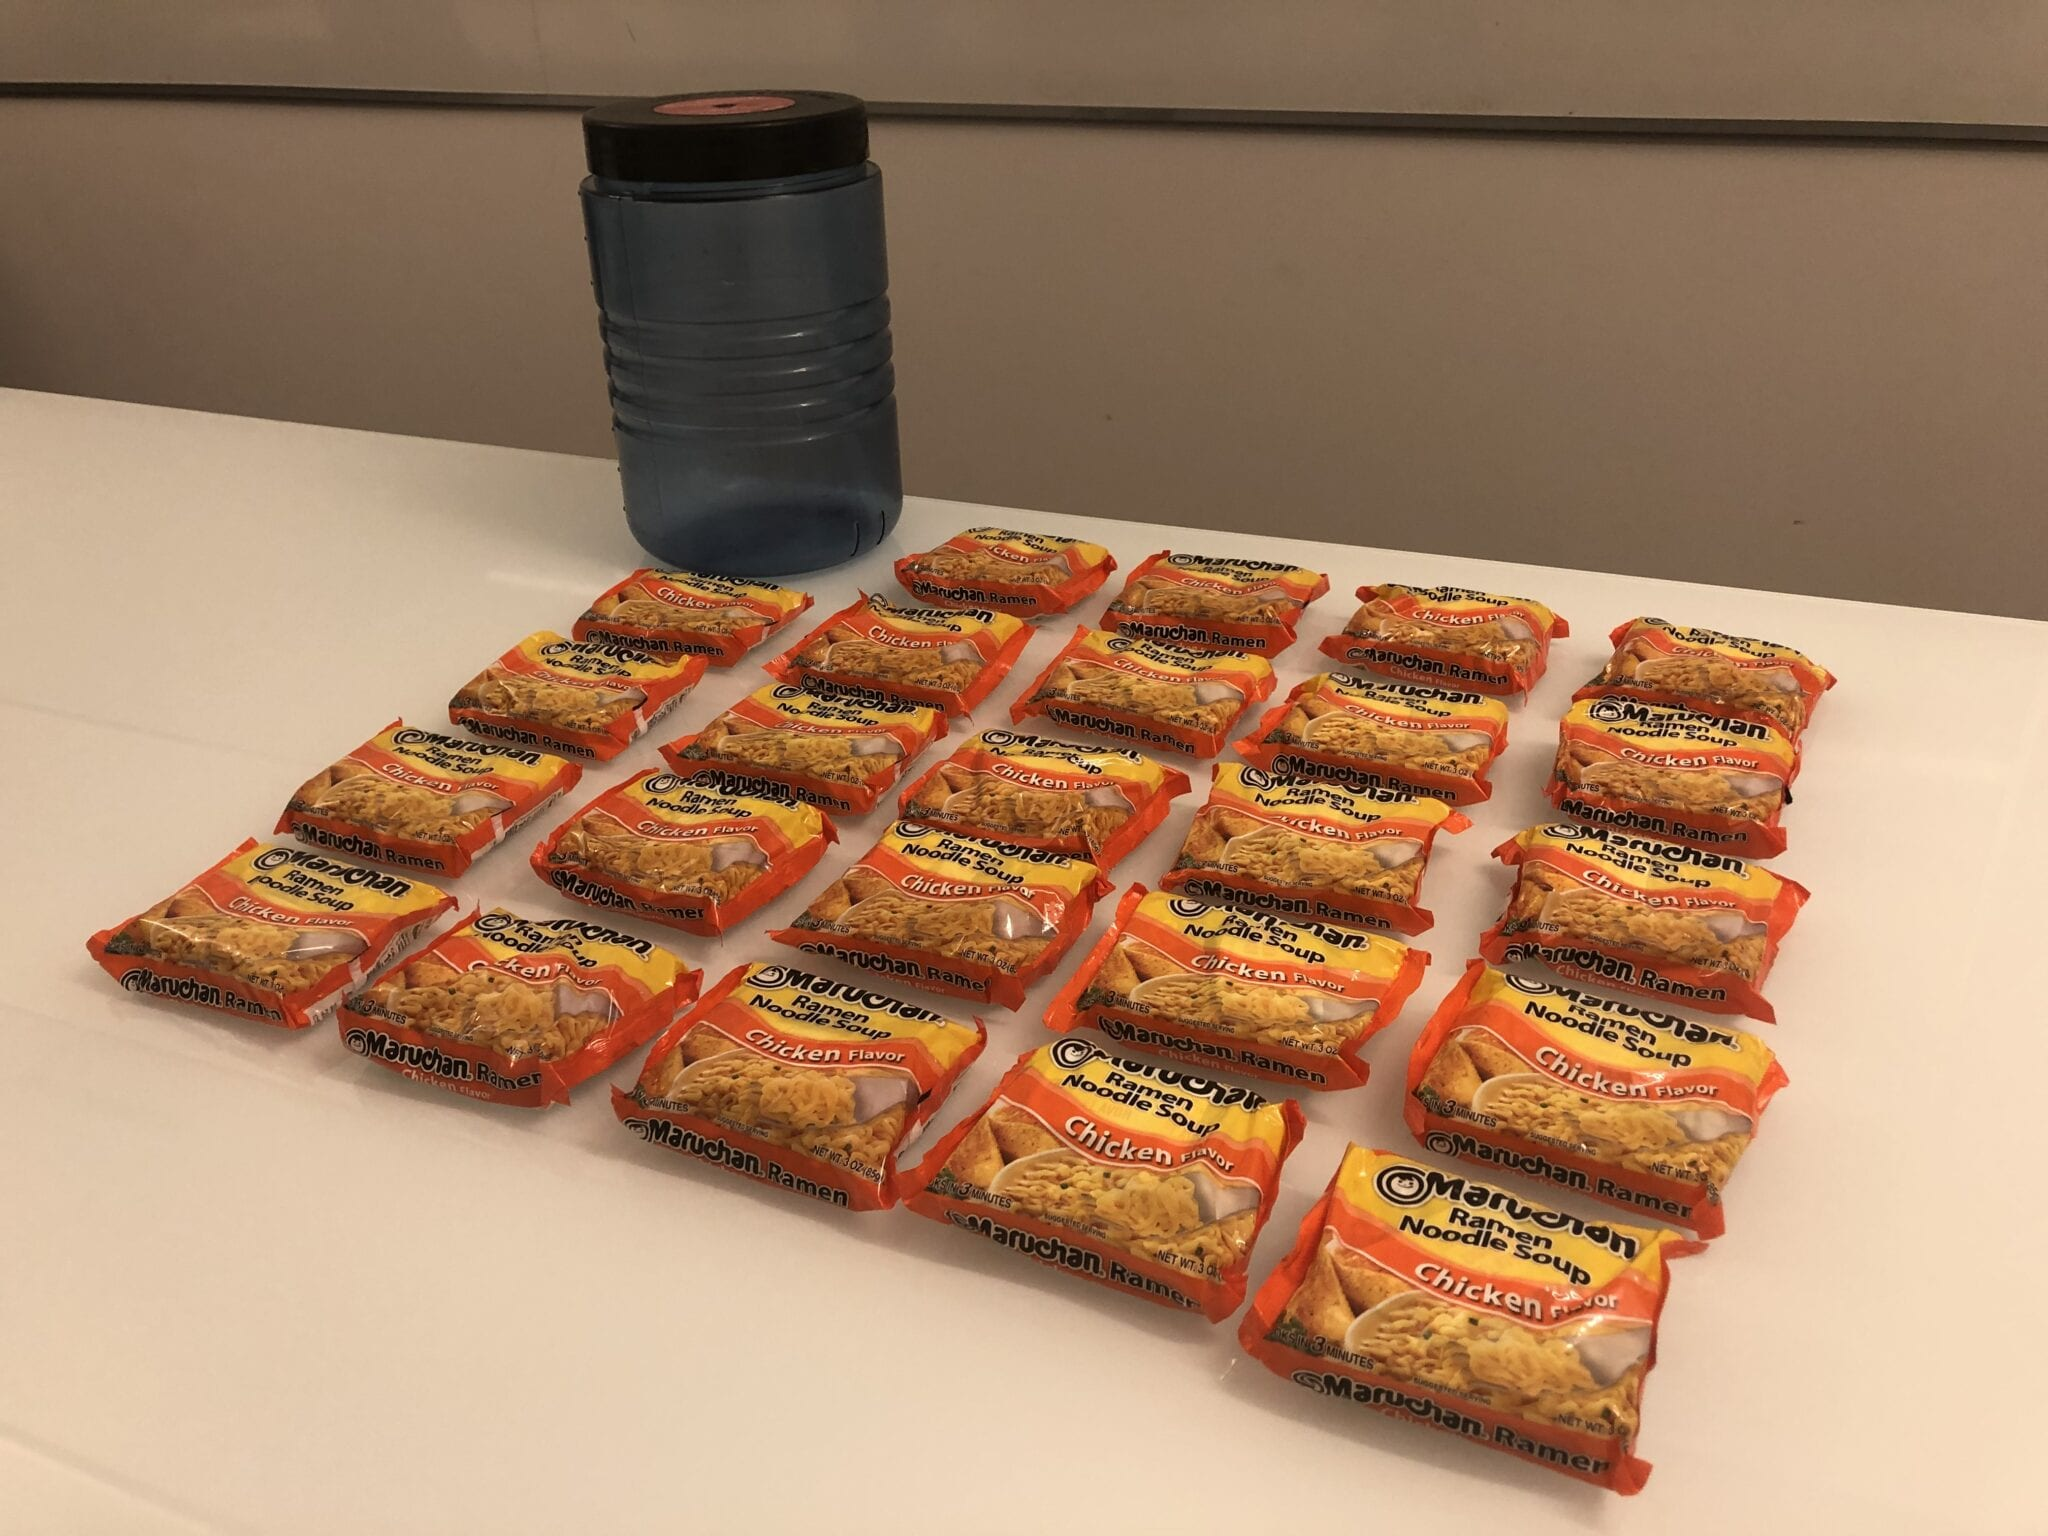 24 Ramen packages laid out next to a BV500 bear canister.